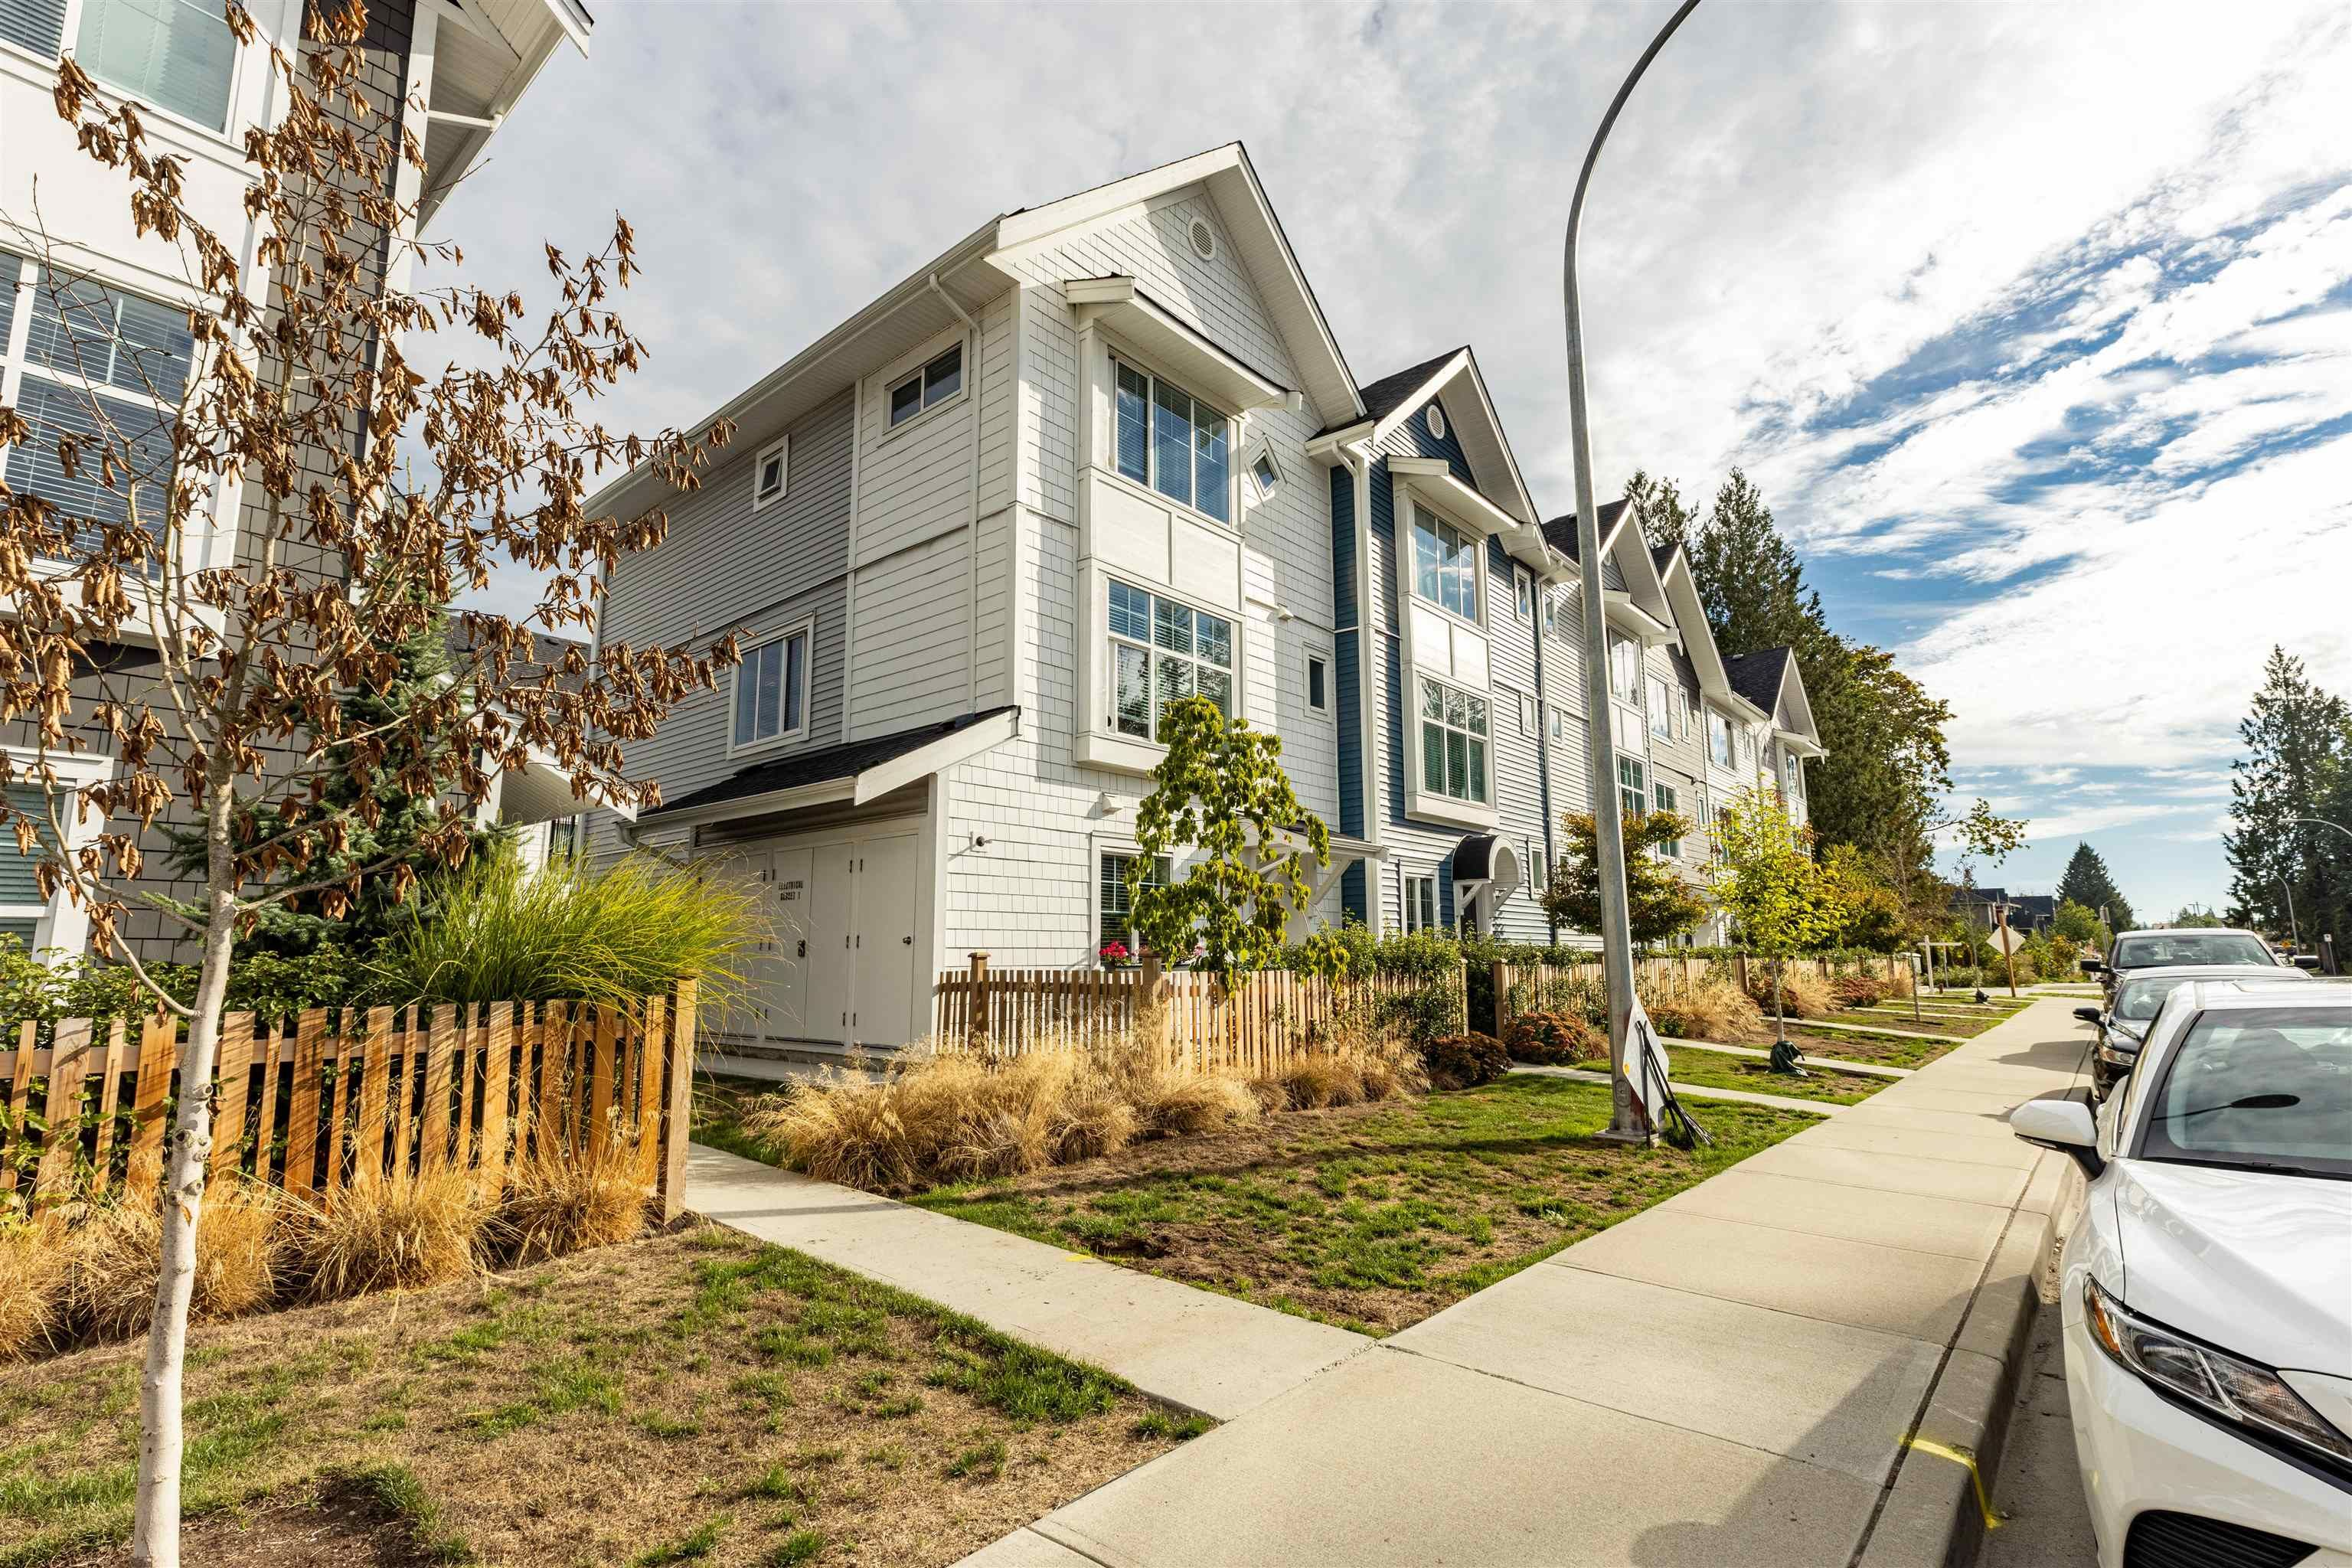 """Main Photo: 6 20451 84 Avenue in Langley: Willoughby Heights Townhouse for sale in """"The Walden"""" : MLS®# R2616635"""